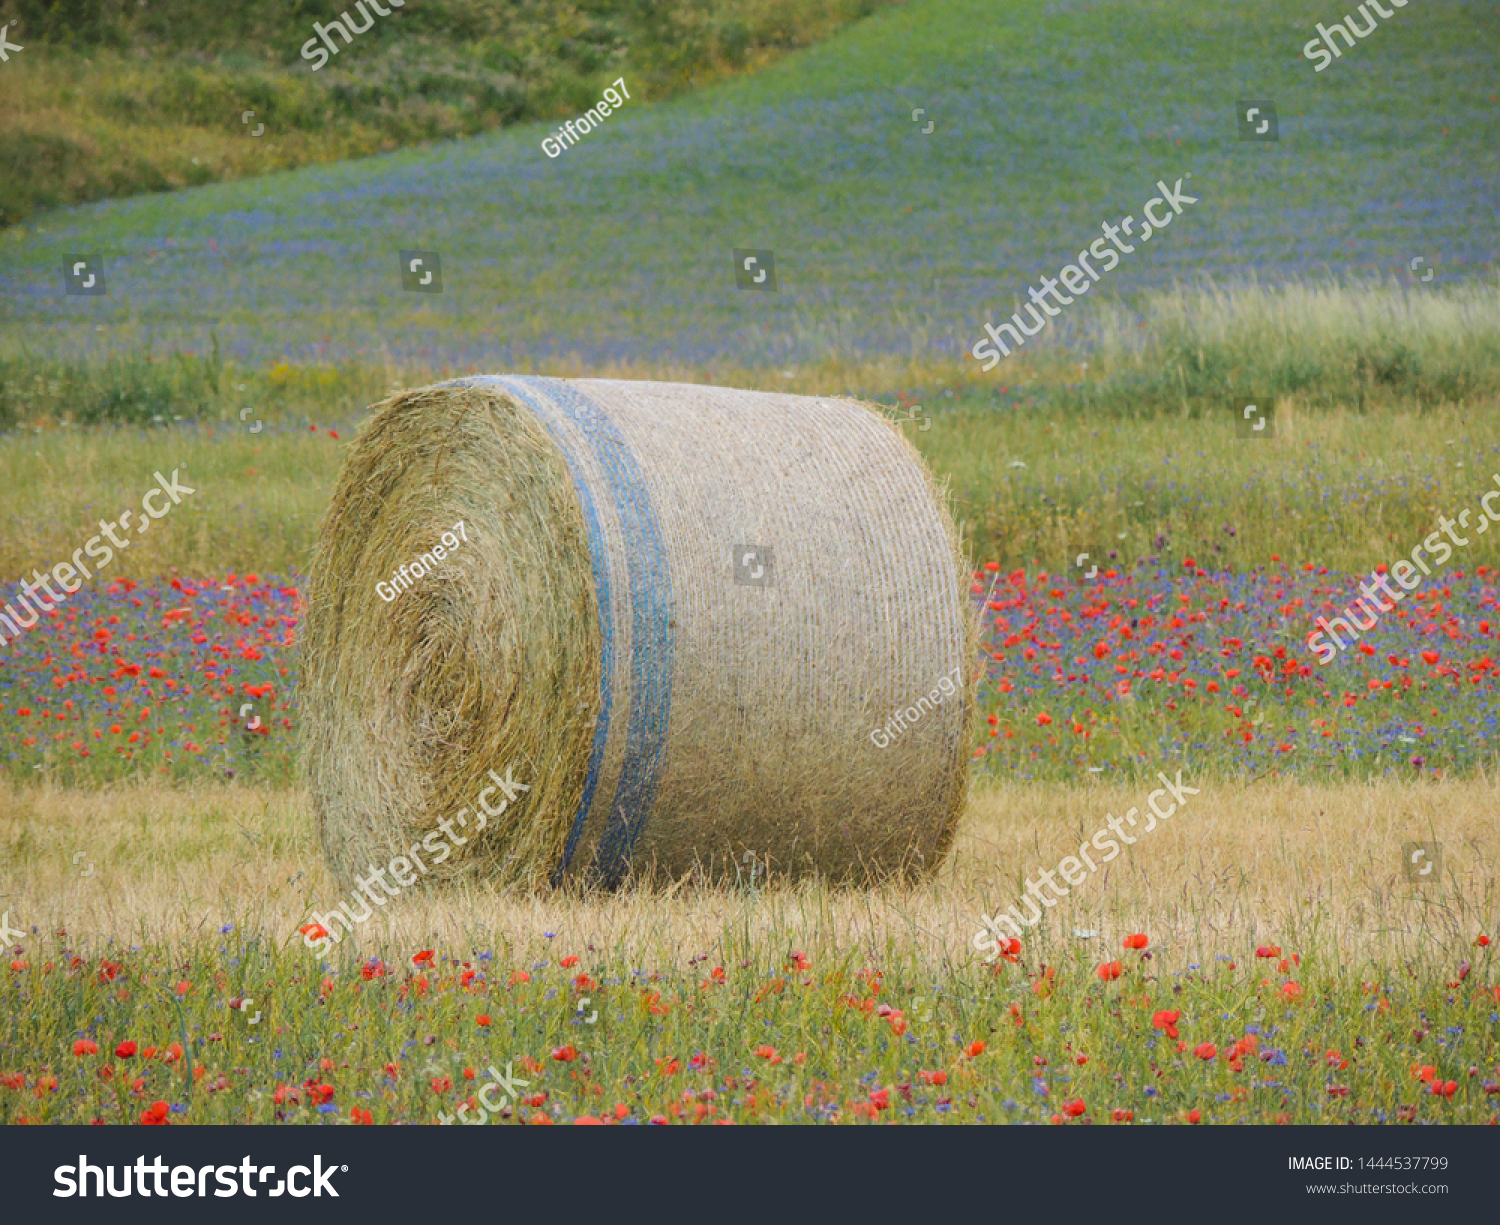 Isolated bale of hay in the cultivated fields during the summer.